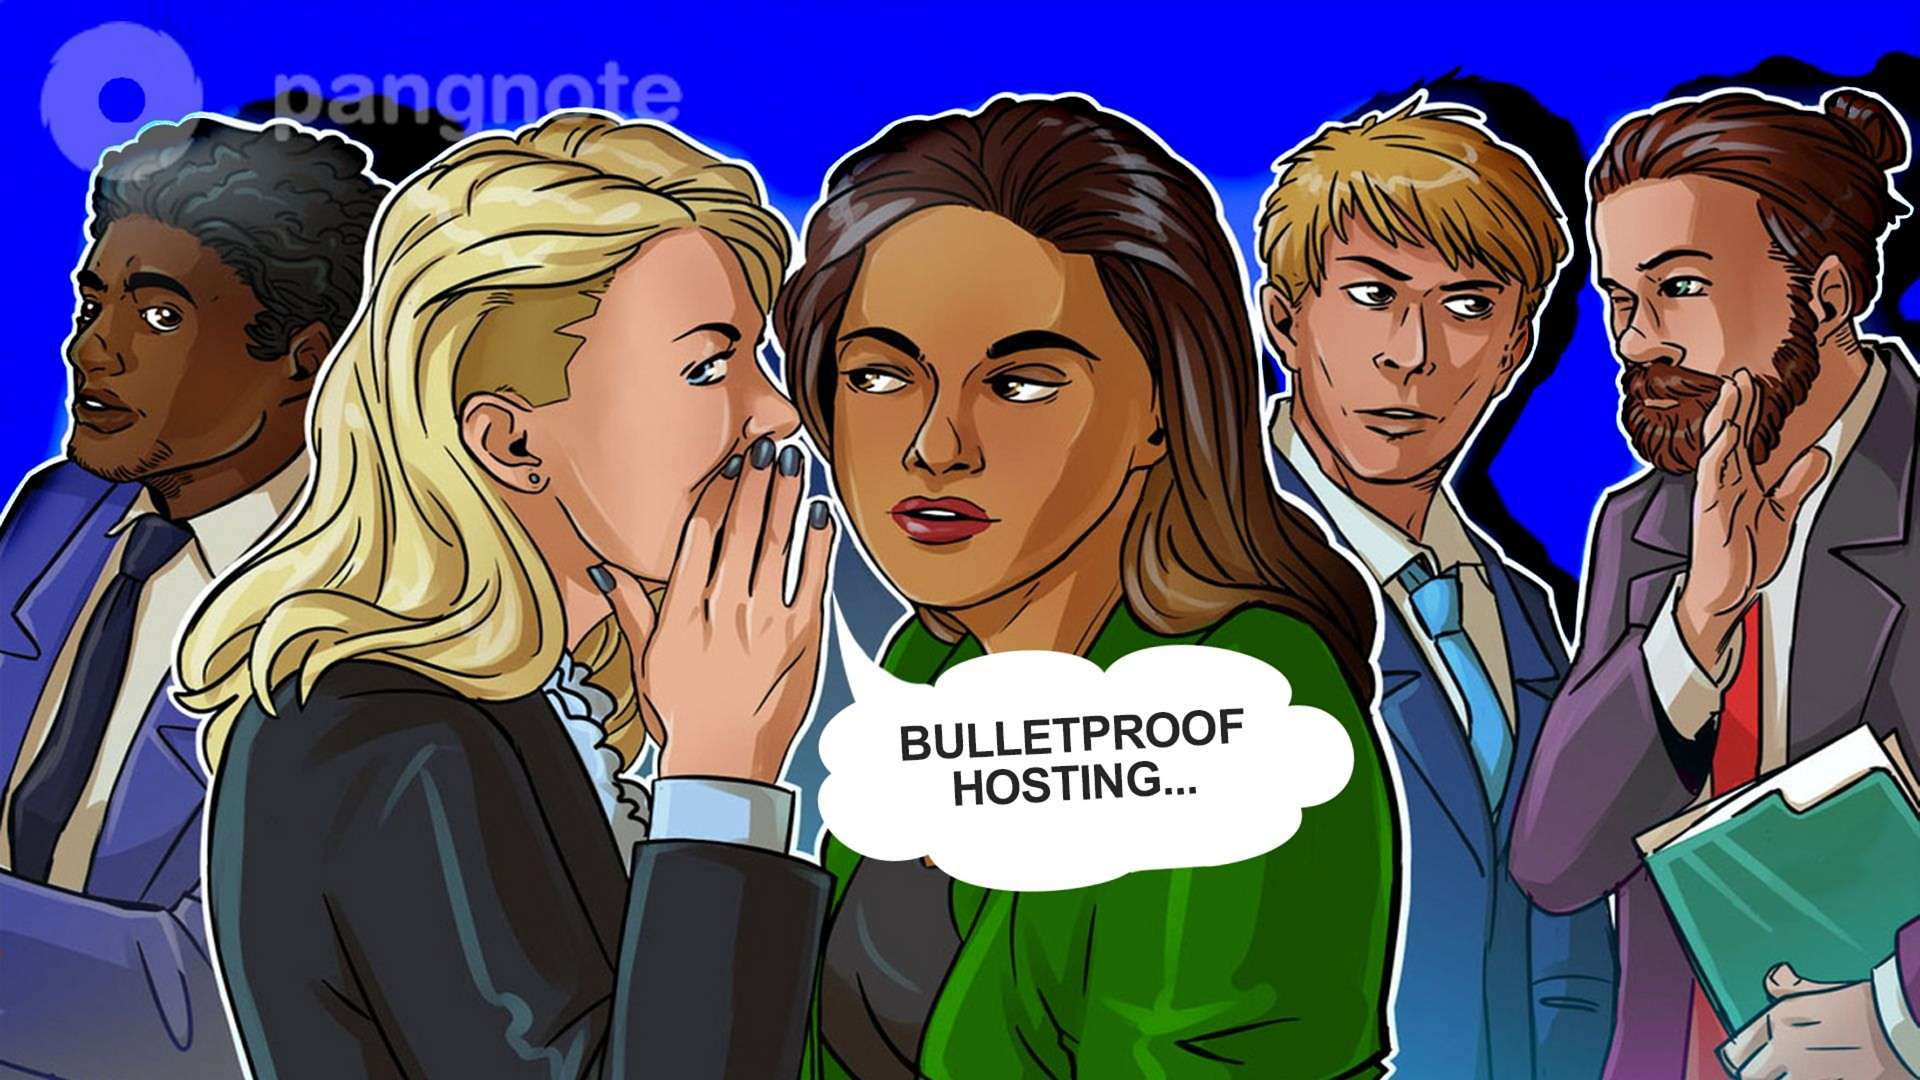 Which country is best to look for a bulletproof hosting